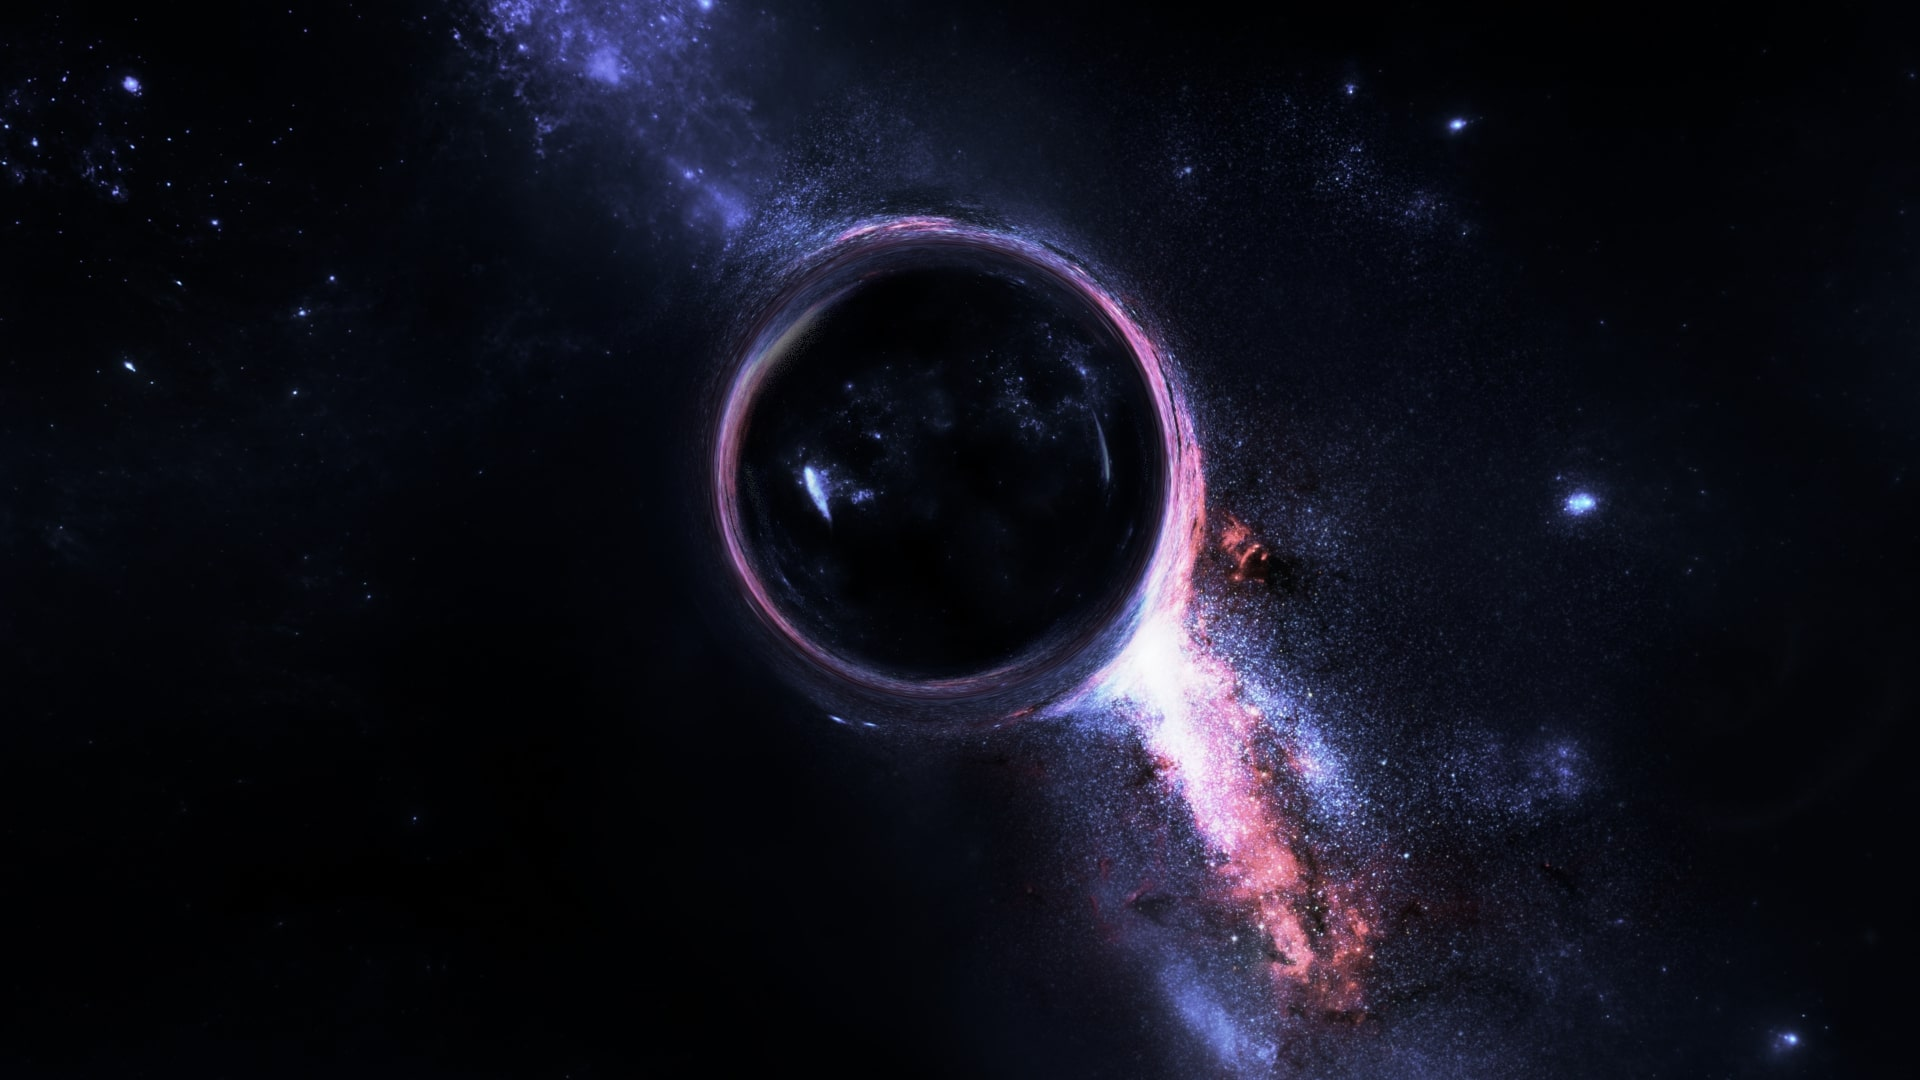 Black Hole Wallpapers Posted By Samantha Johnson